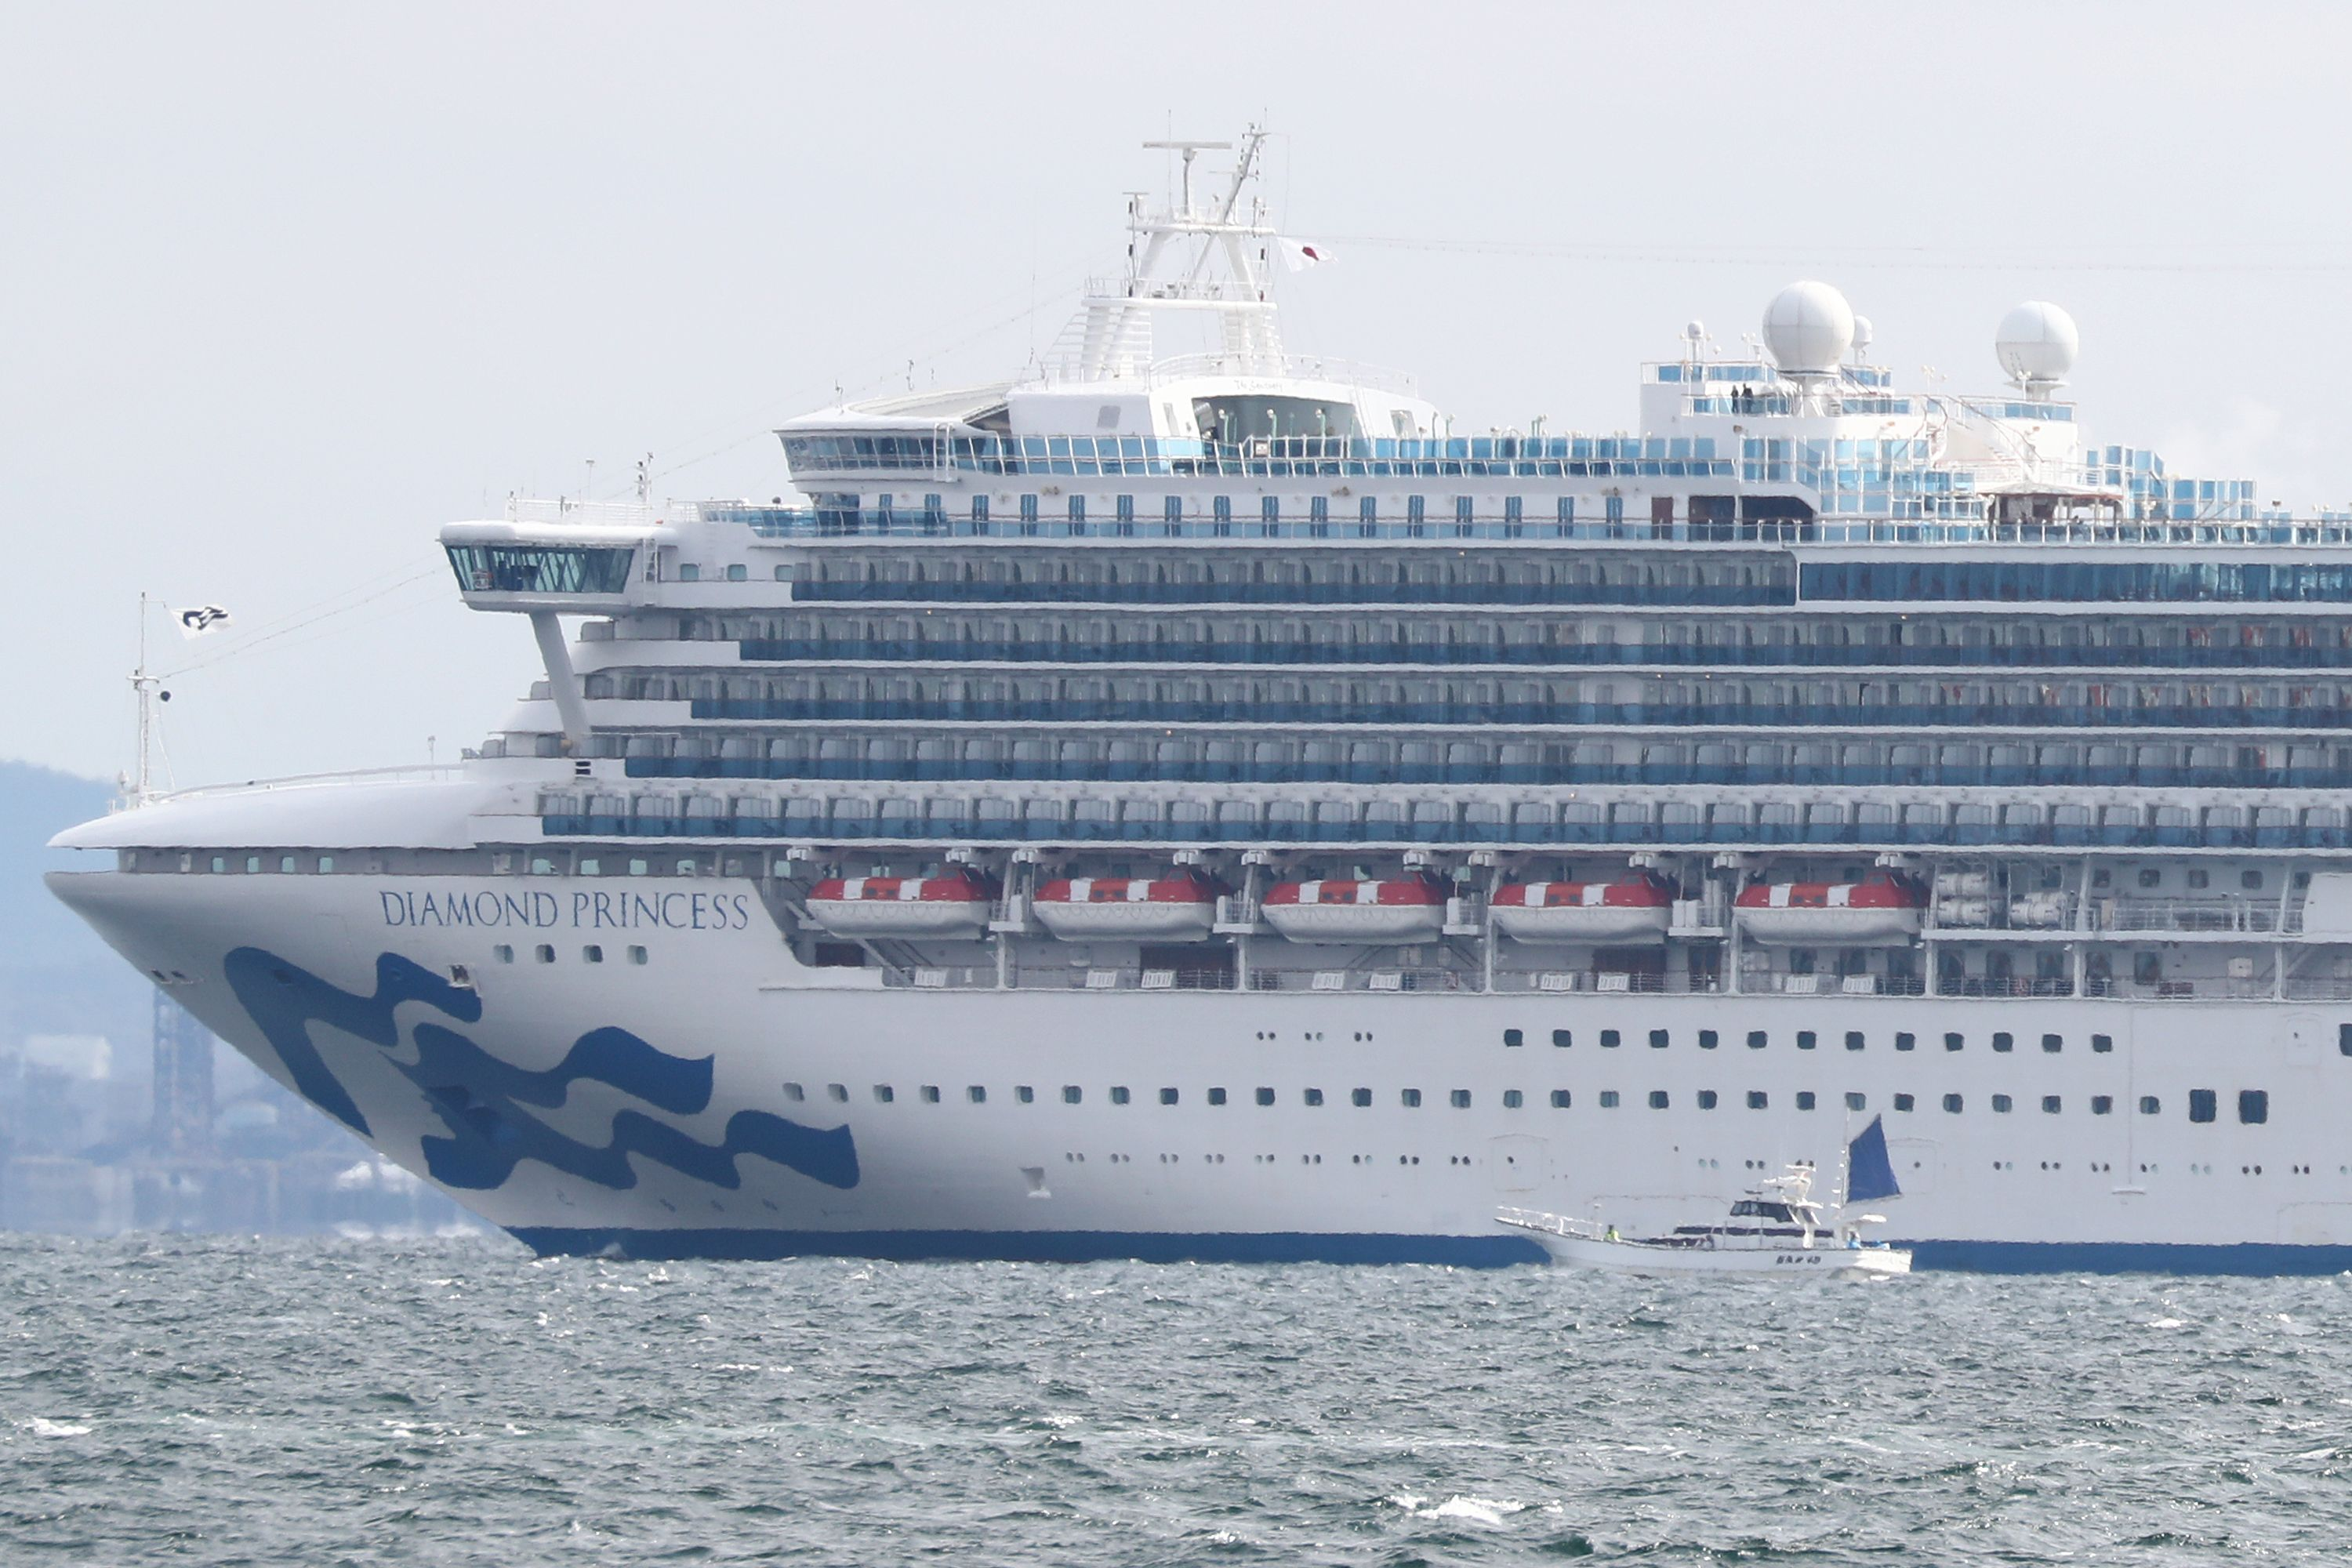 The Diamond Princess cruise ship, anchored in quarantine off the port of Yokohama on February 4, 2020.